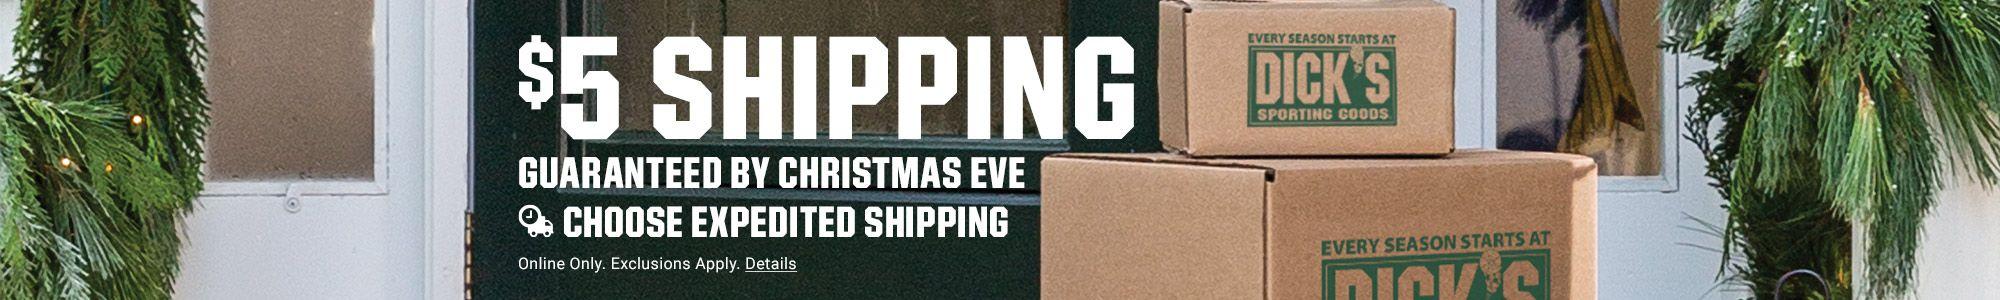 $5 Shipping - Guaranteed By Christmas Eve - Choose Expedited Shipping